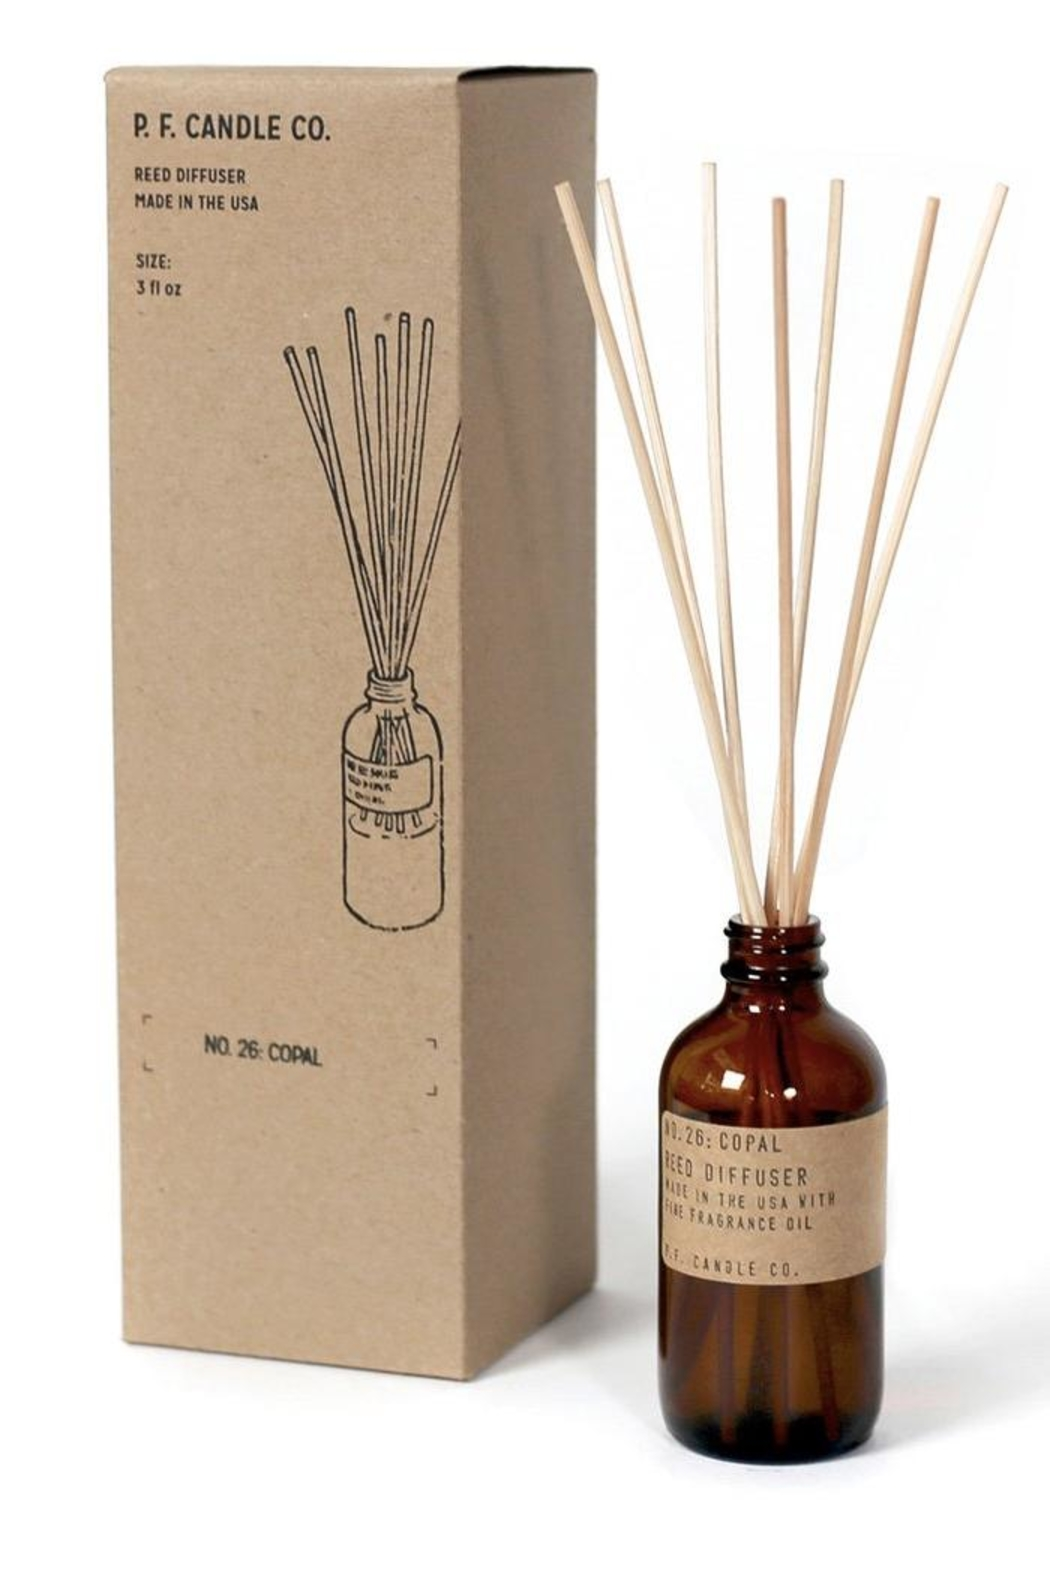 P.F. Candle Co. Reed Diffuser - Main Image